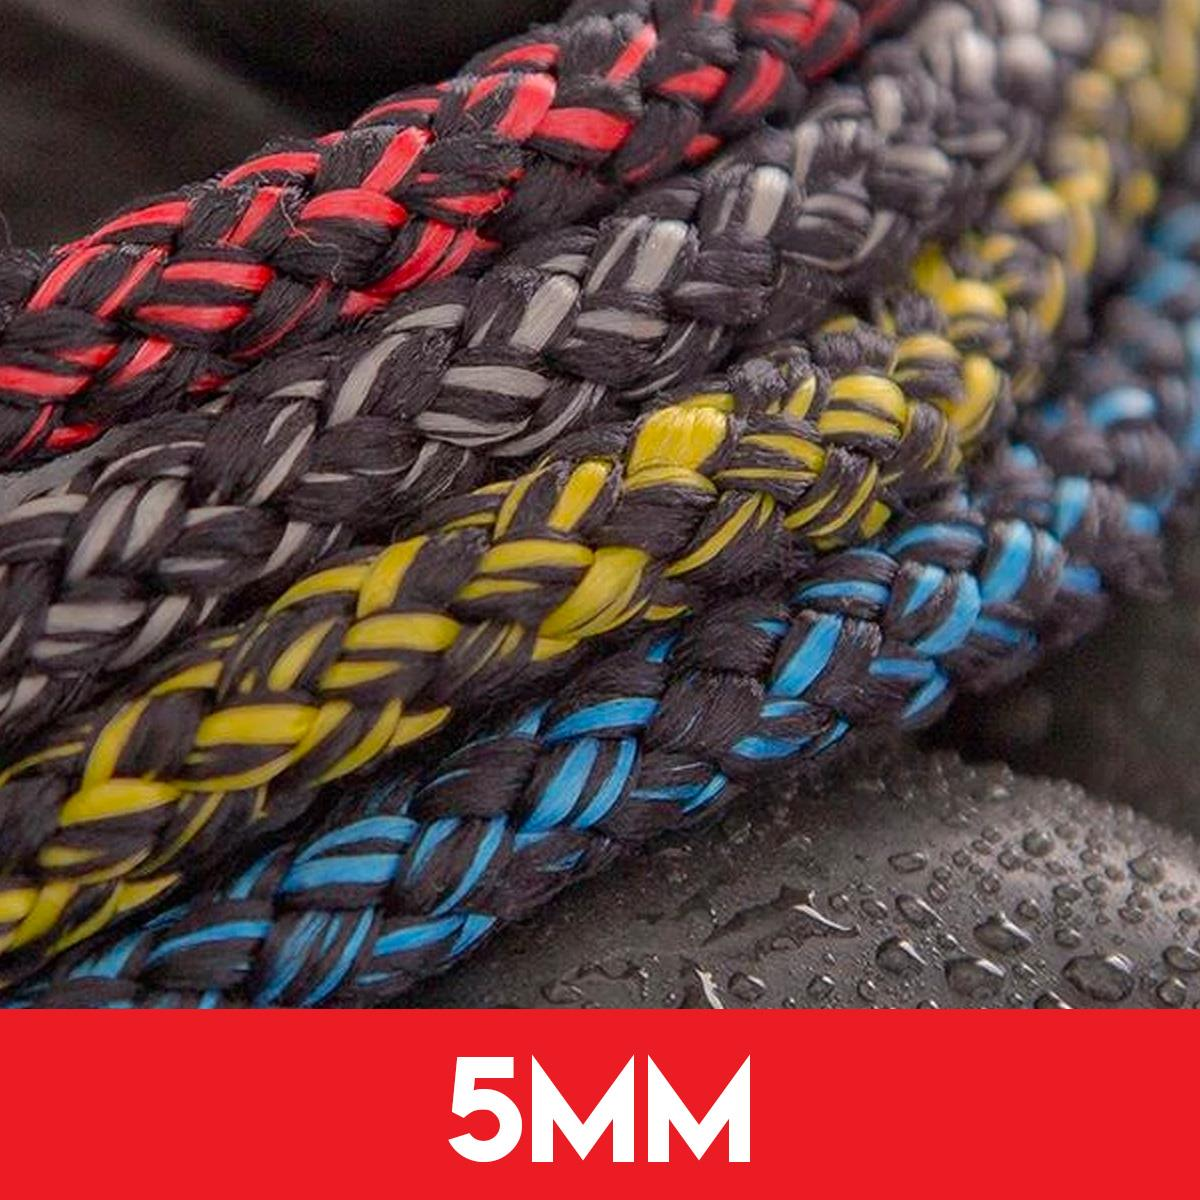 5mm Gottifredi Maffioli Swiftcord Rope